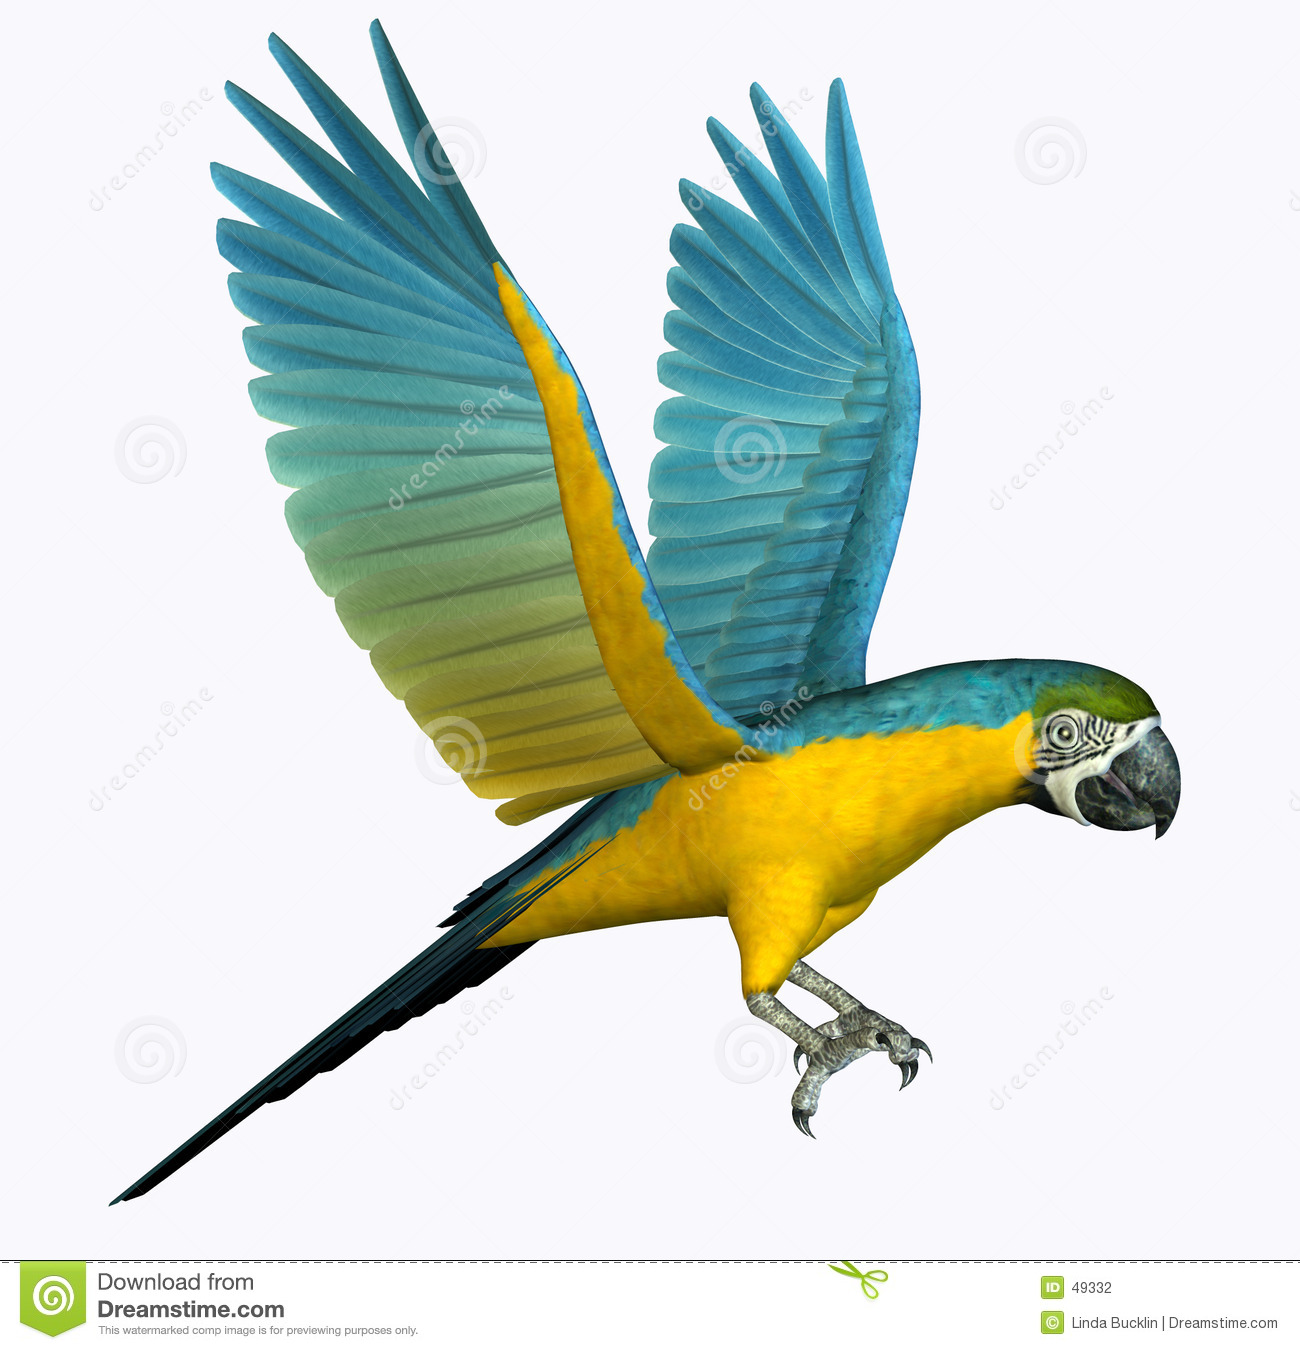 Vôo do Macaw